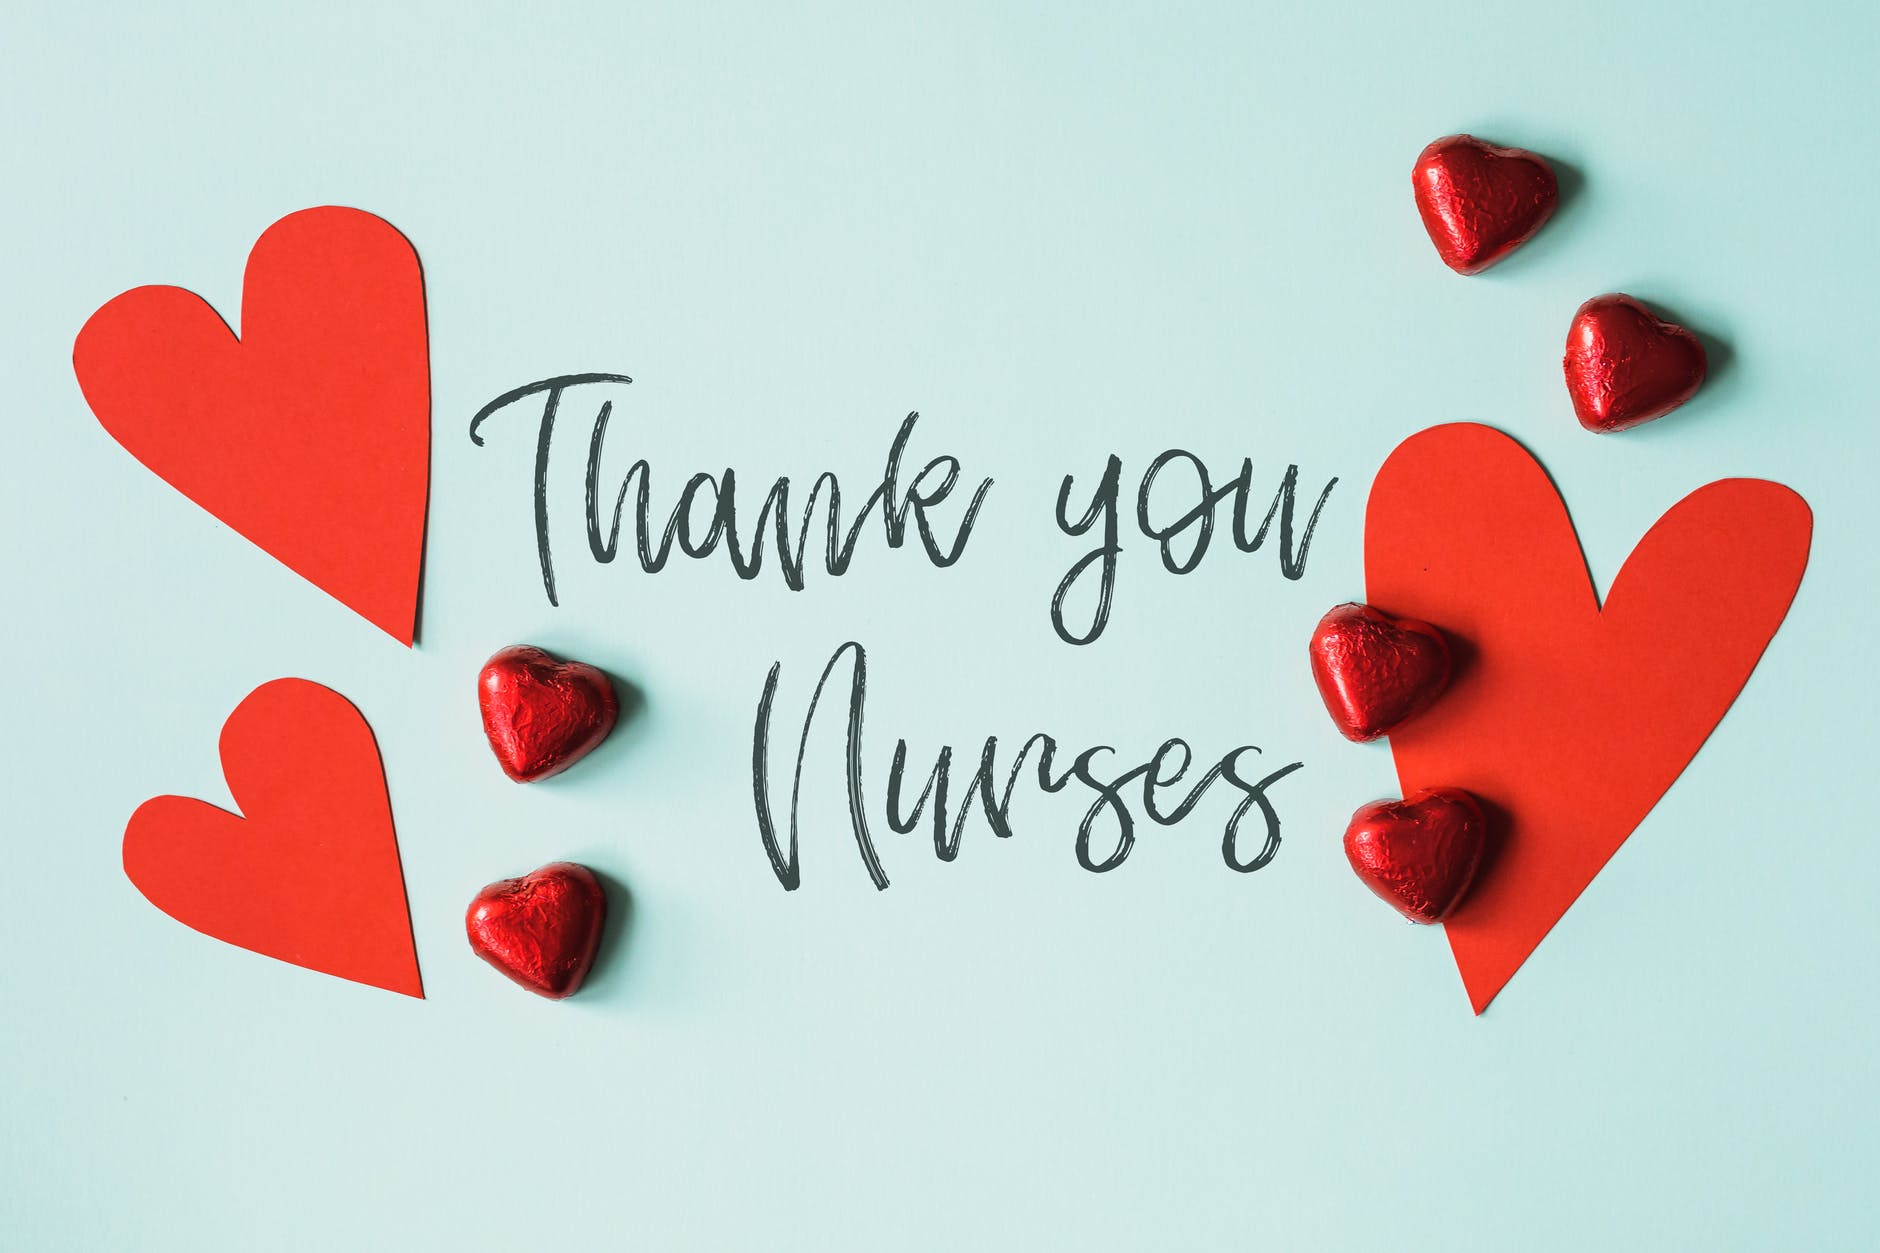 gratitude message for nurses with red hearts